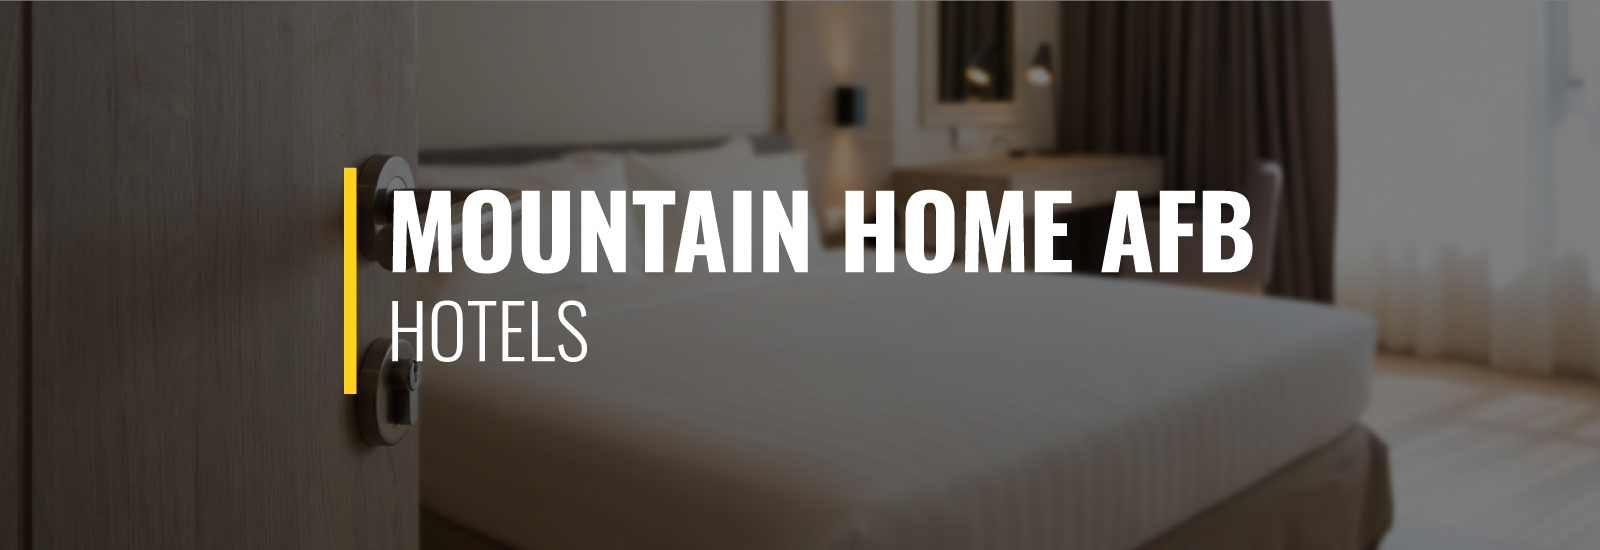 Mountain Home AFB Hotels